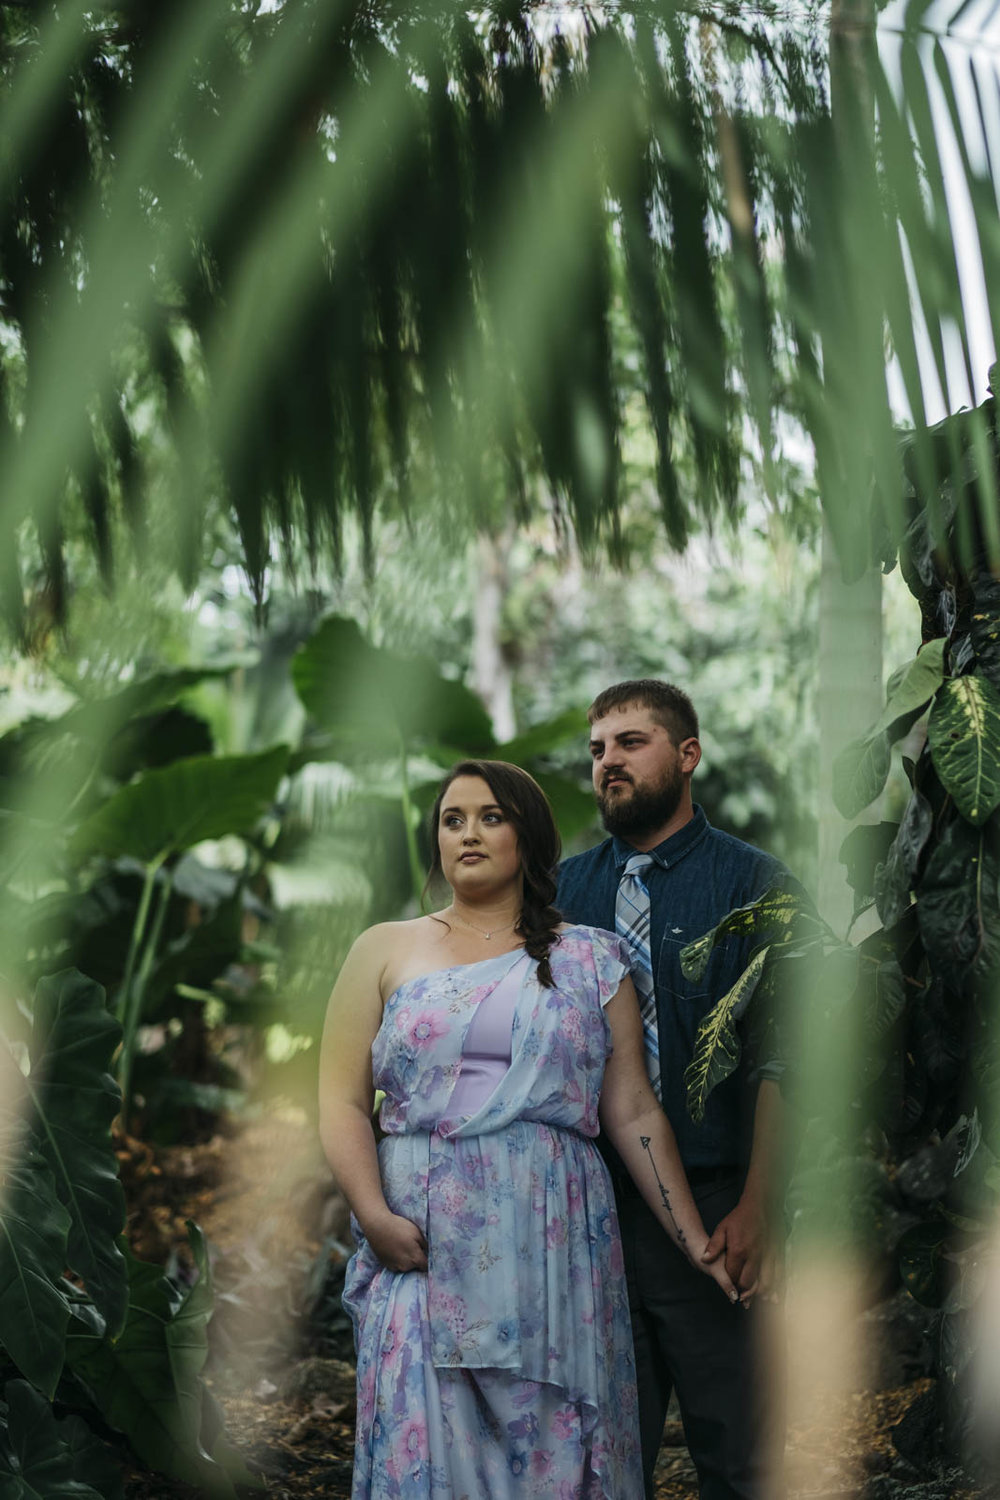 Portrait of the bride and groom in Hawaii before their wedding ceremony.